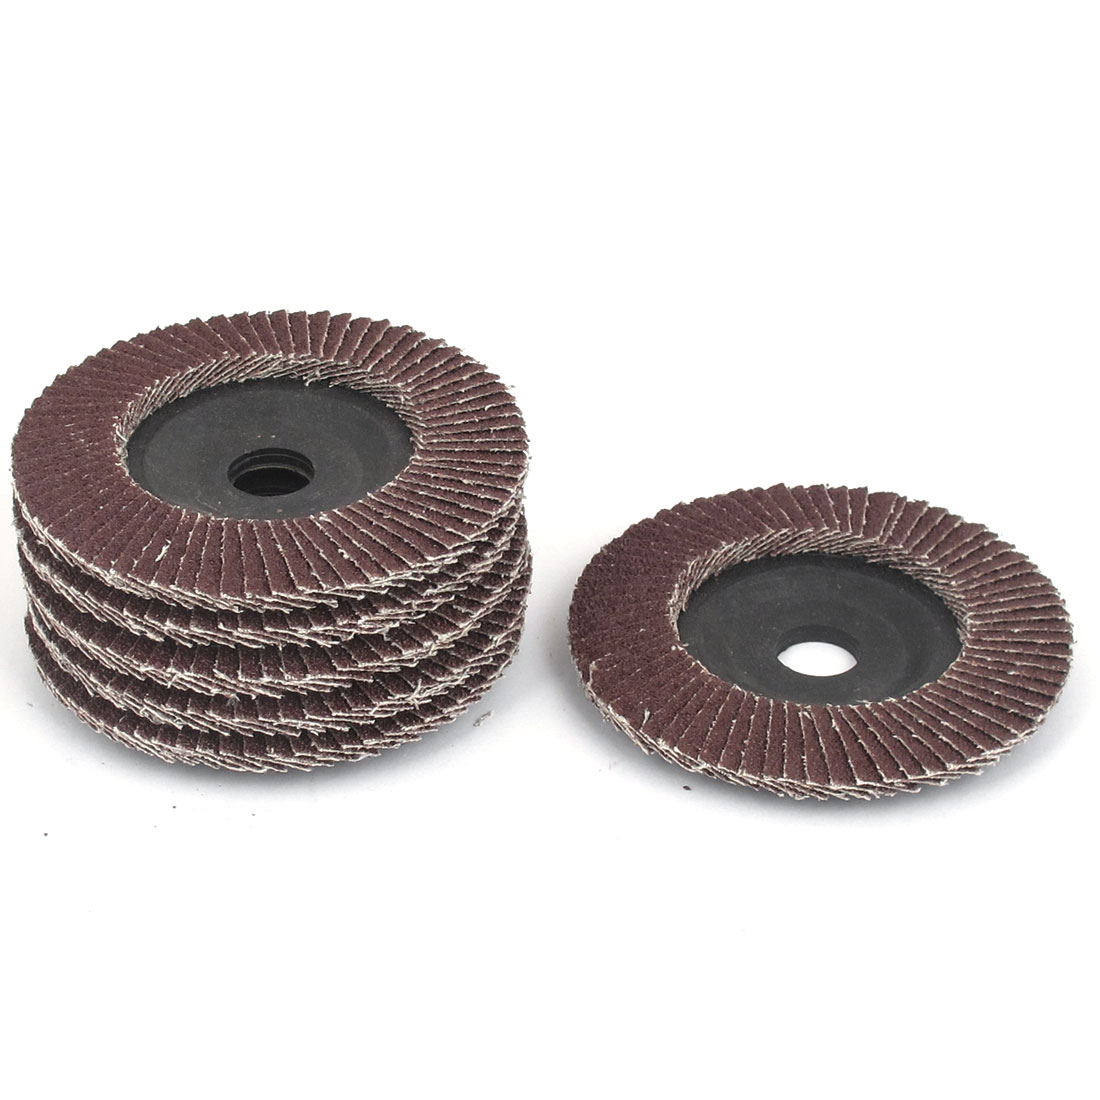 16mm x 100mm 60 Grip Fan Type Abrasive Flap Sanding Discs Buffing Wheels 6 Pcs